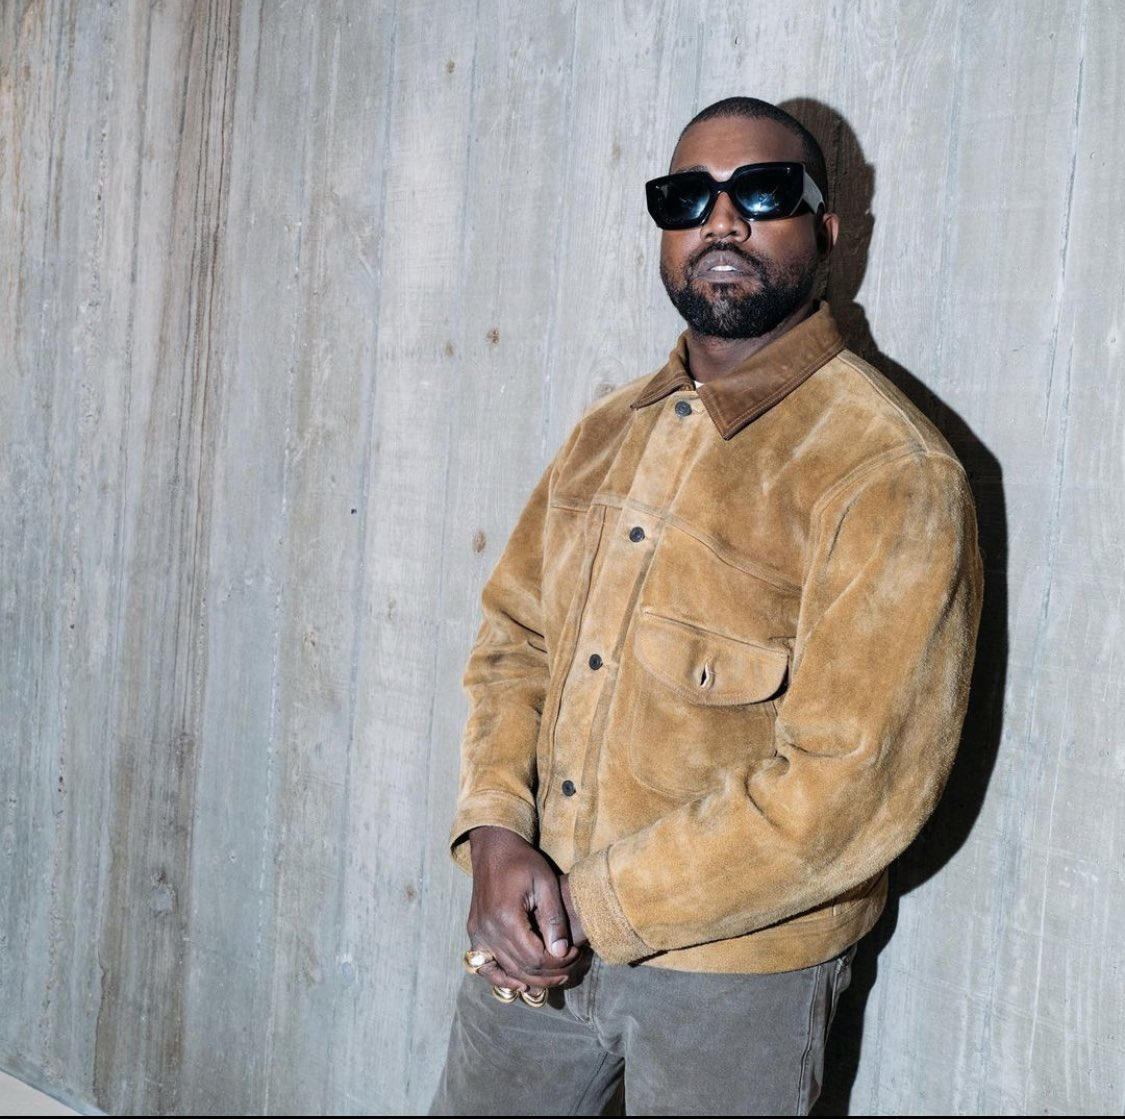 I'm voting for Kanye West for Favorite Artist - Contemporary Inspirational at the #AMAs https://t.co/C1wxh32p6H